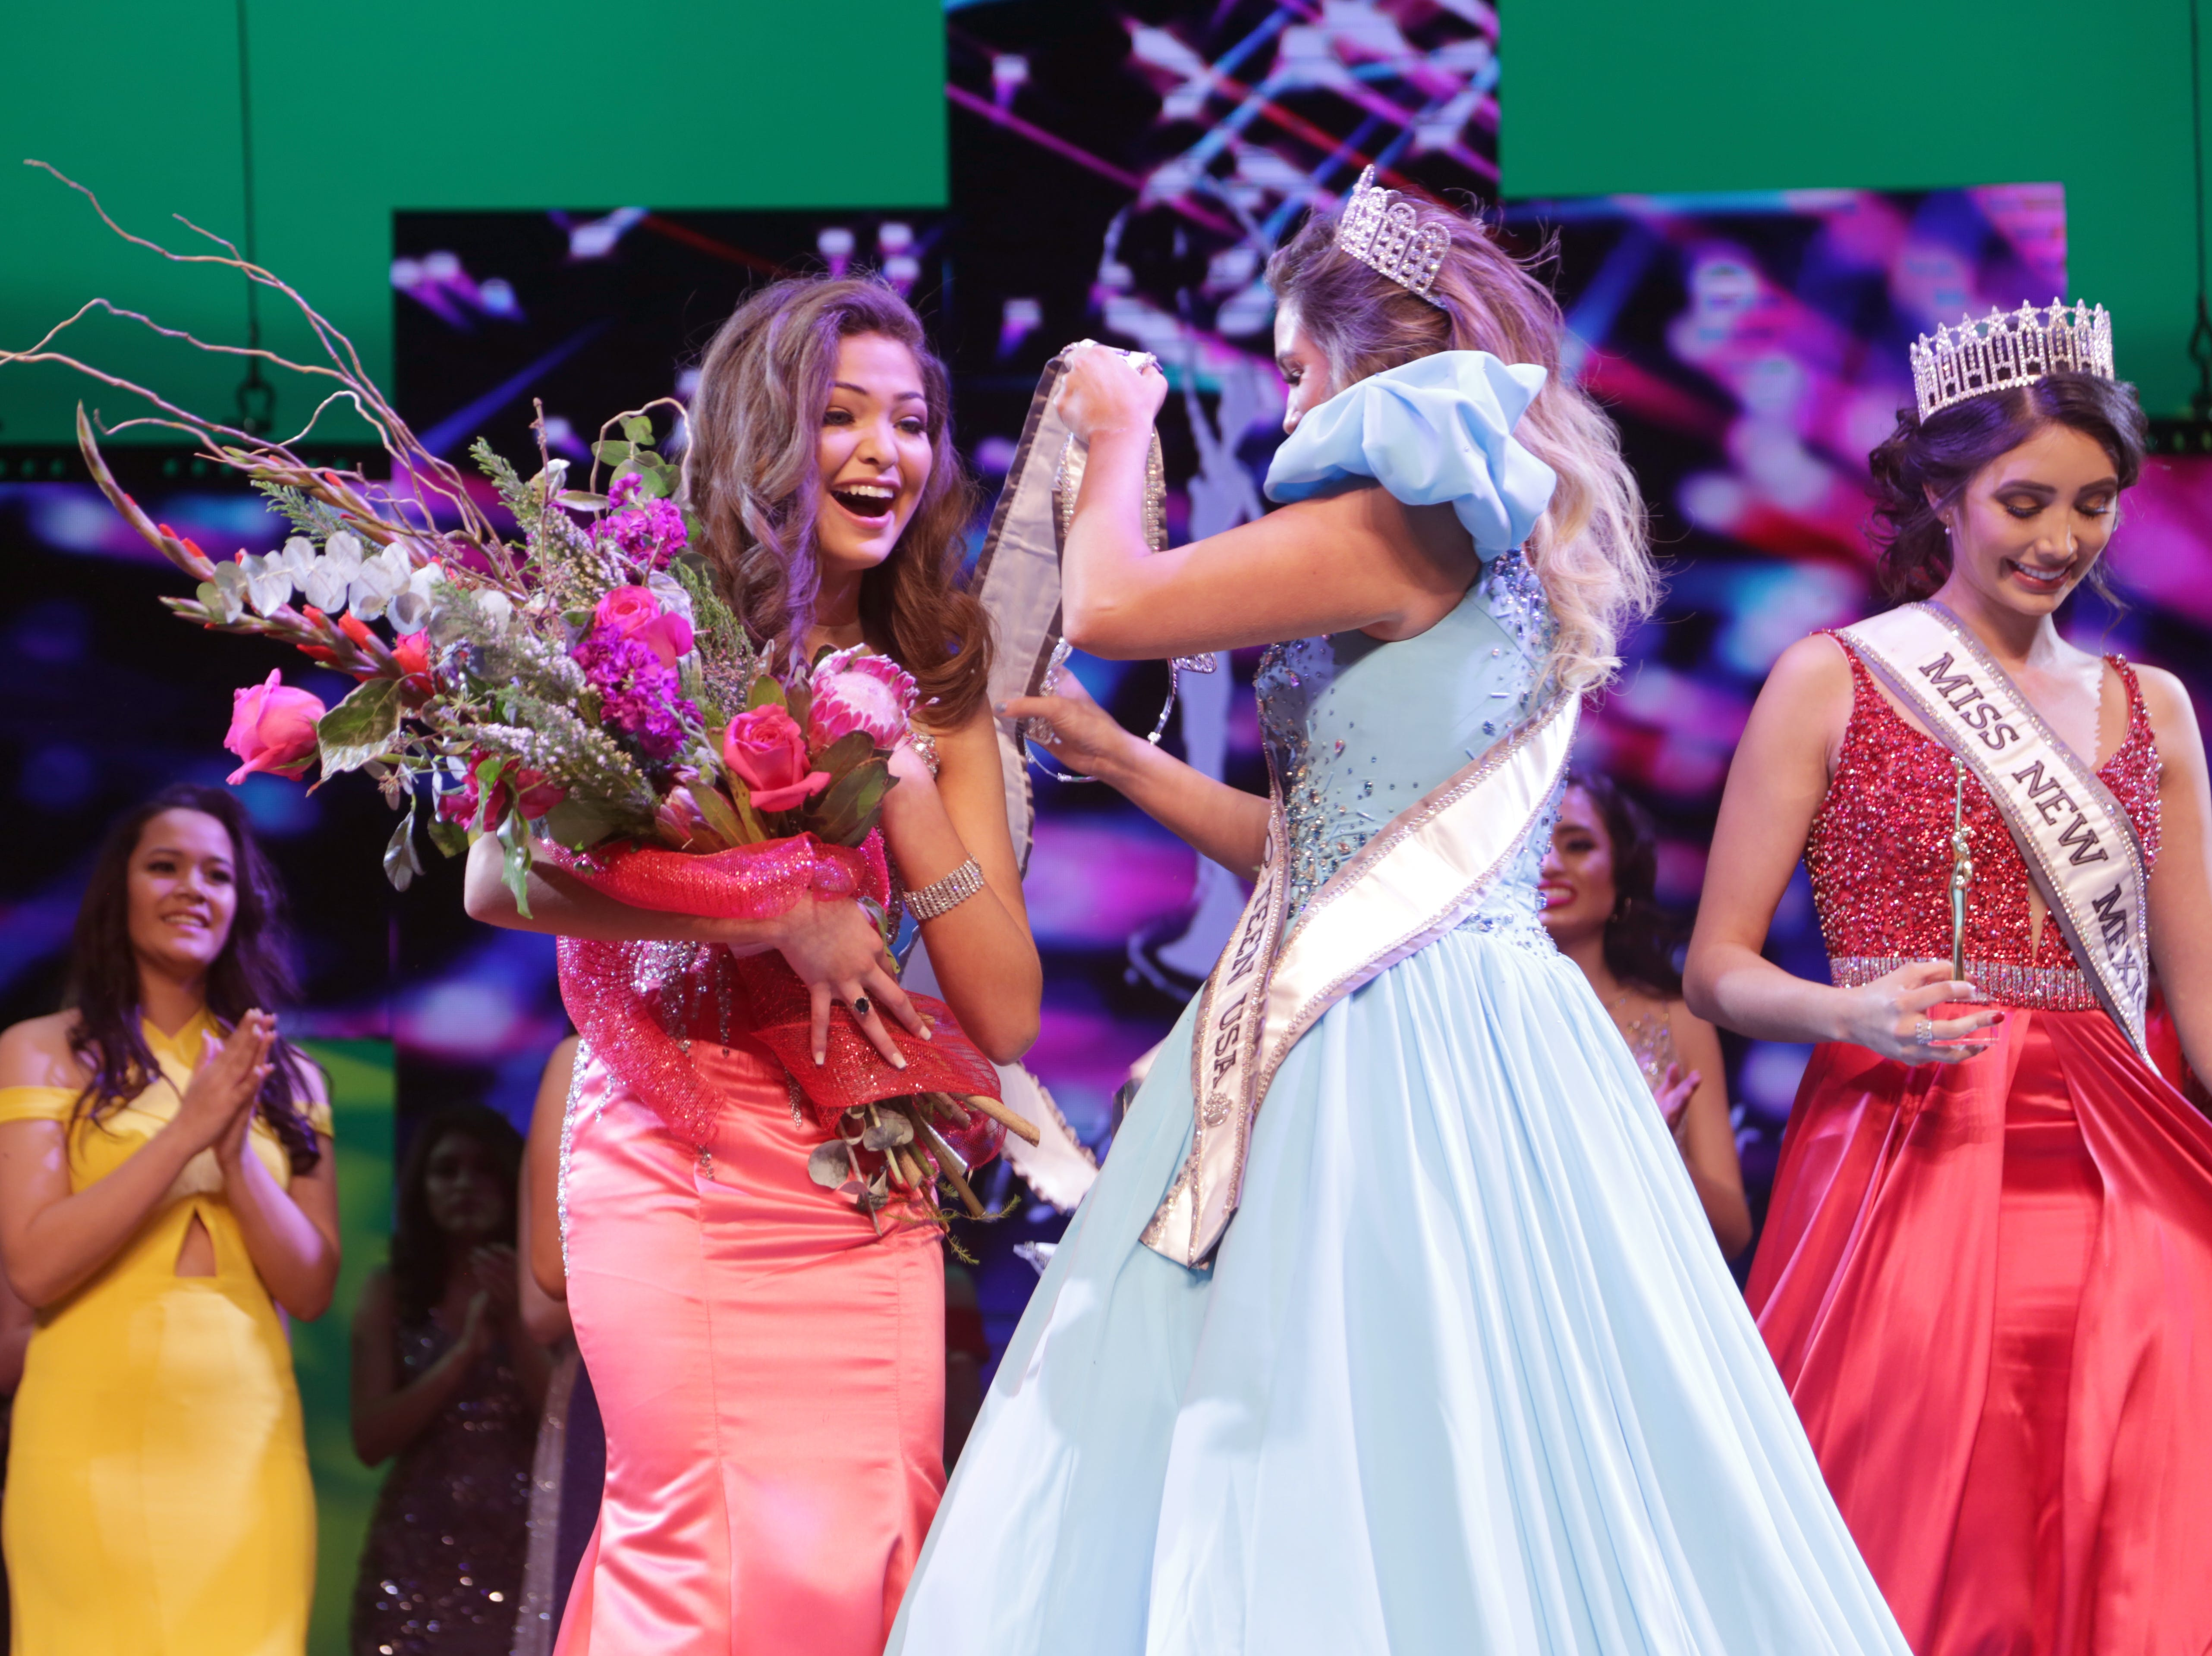 Angela Nanez, 14, was crowned Miss New Mexico Teen USA 2019.